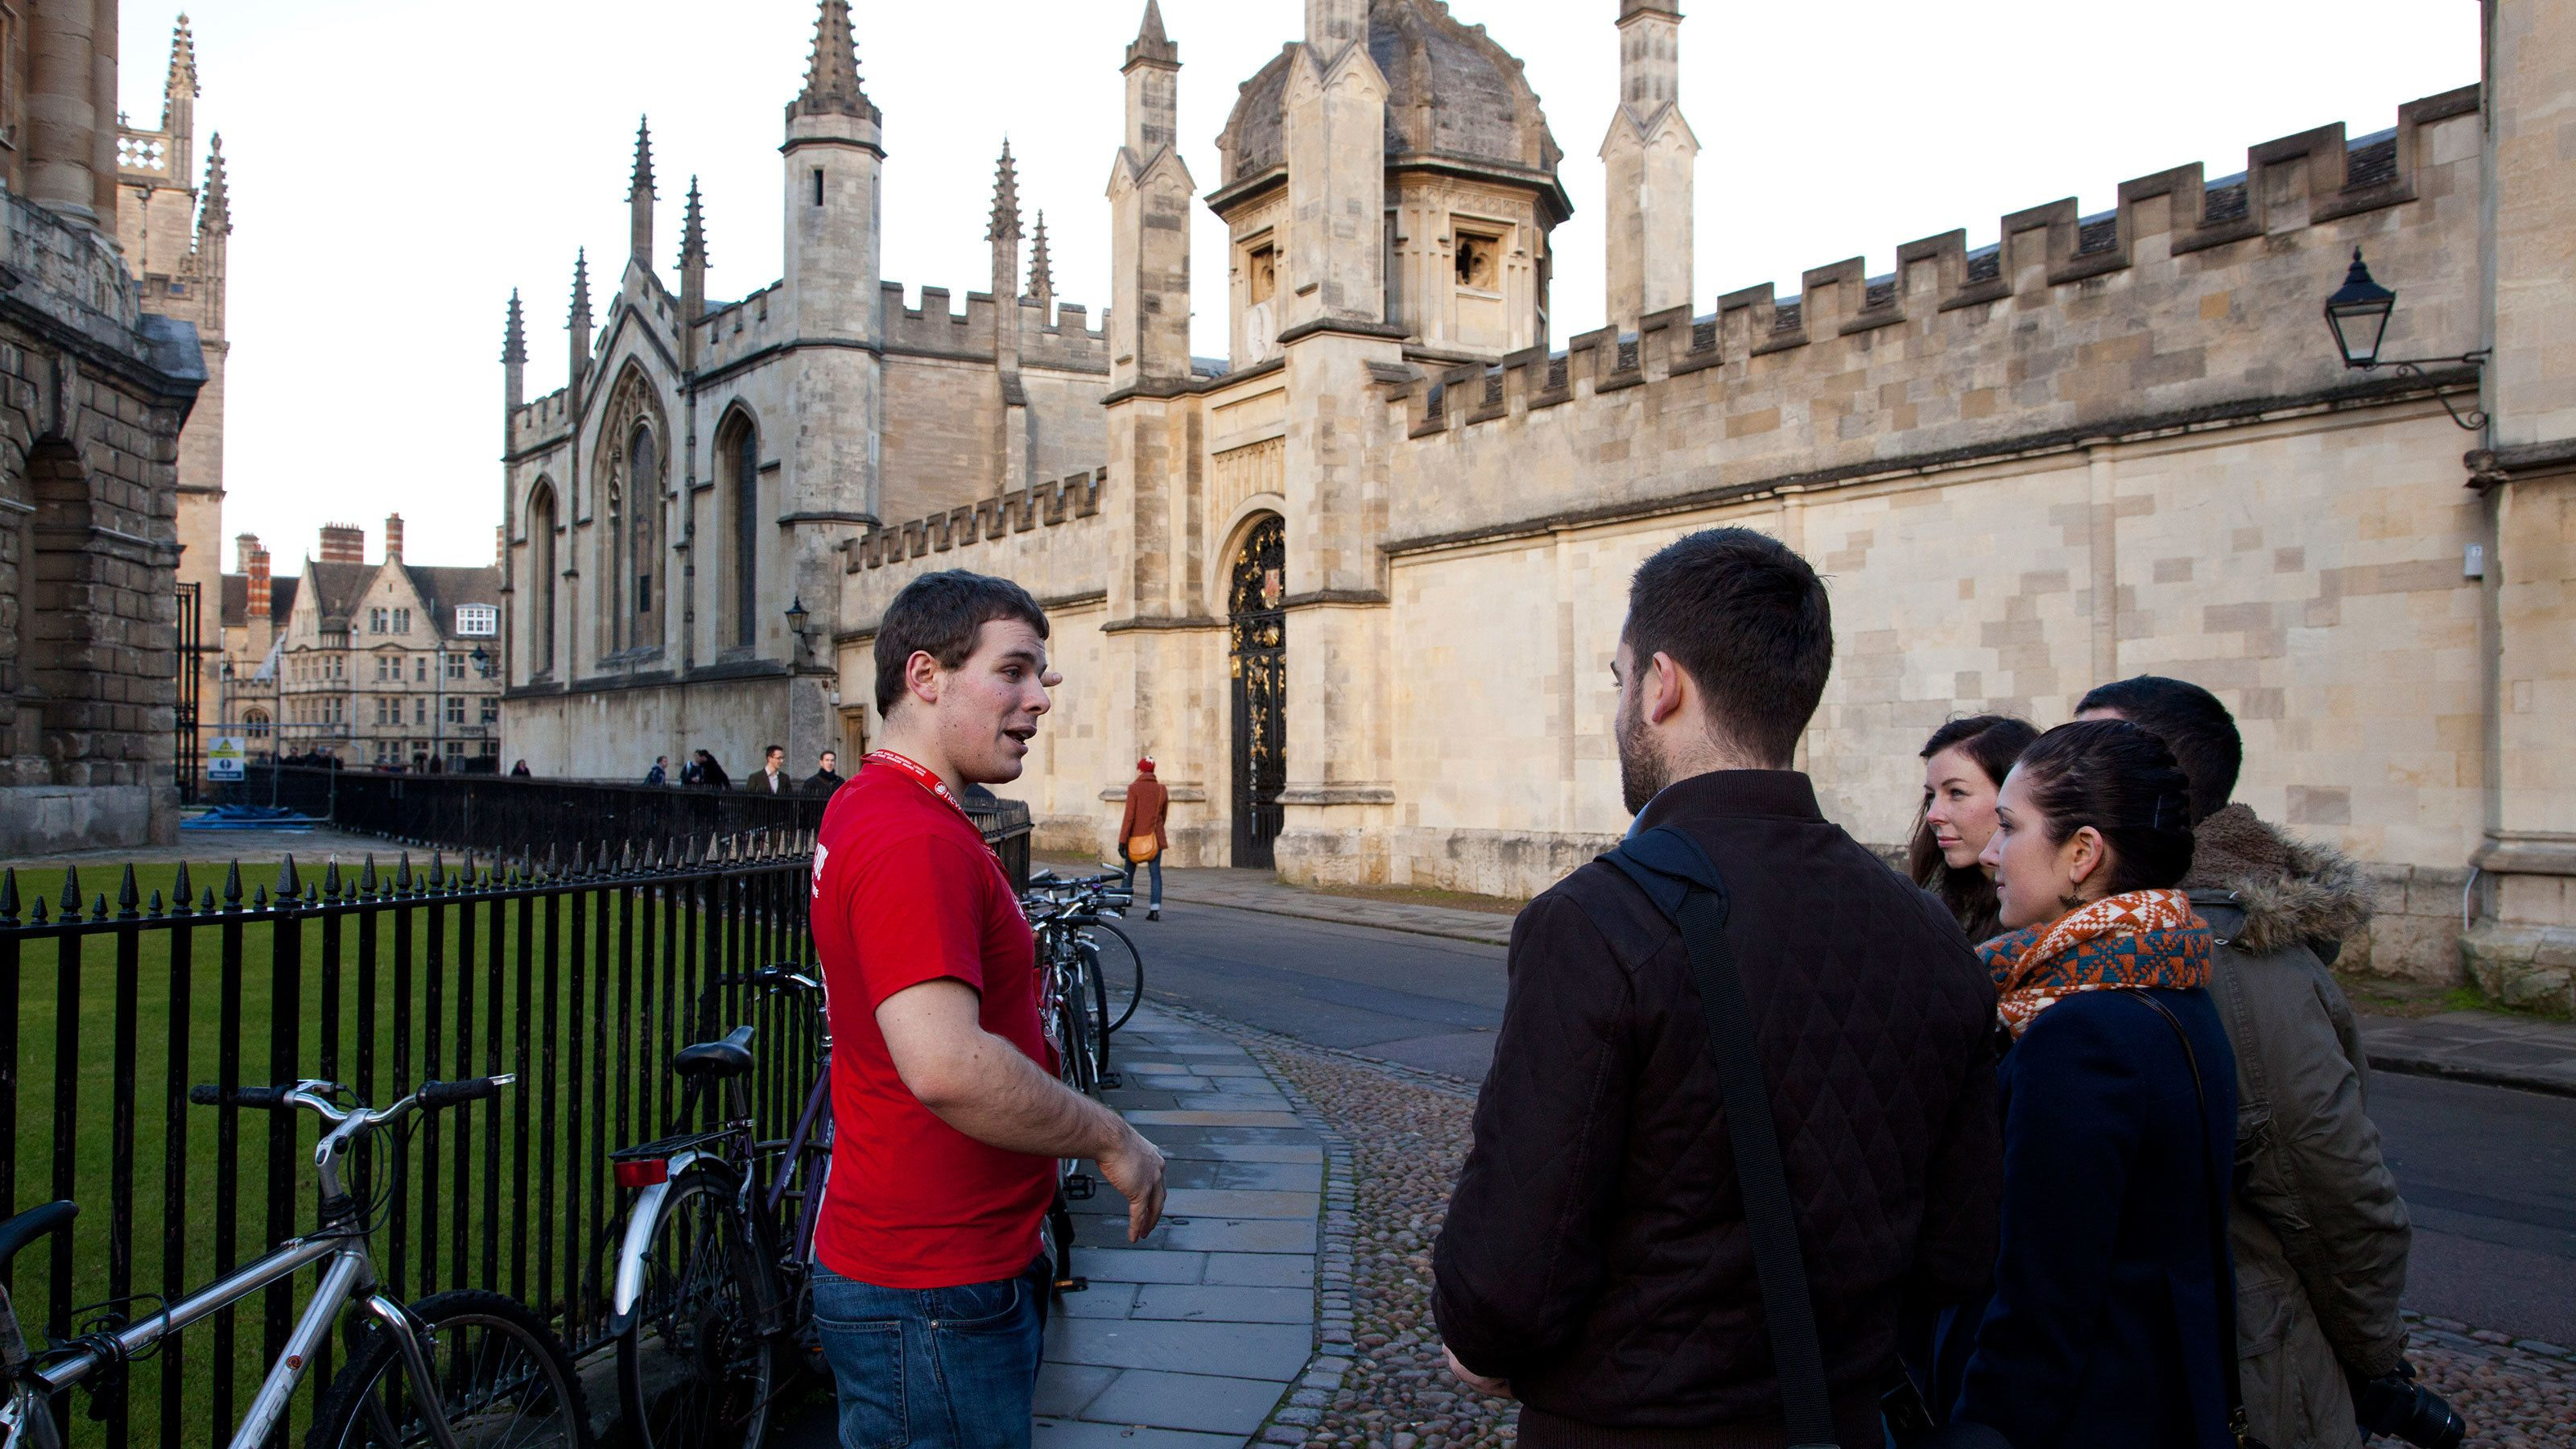 tour guide showing people around Castle in Oxford